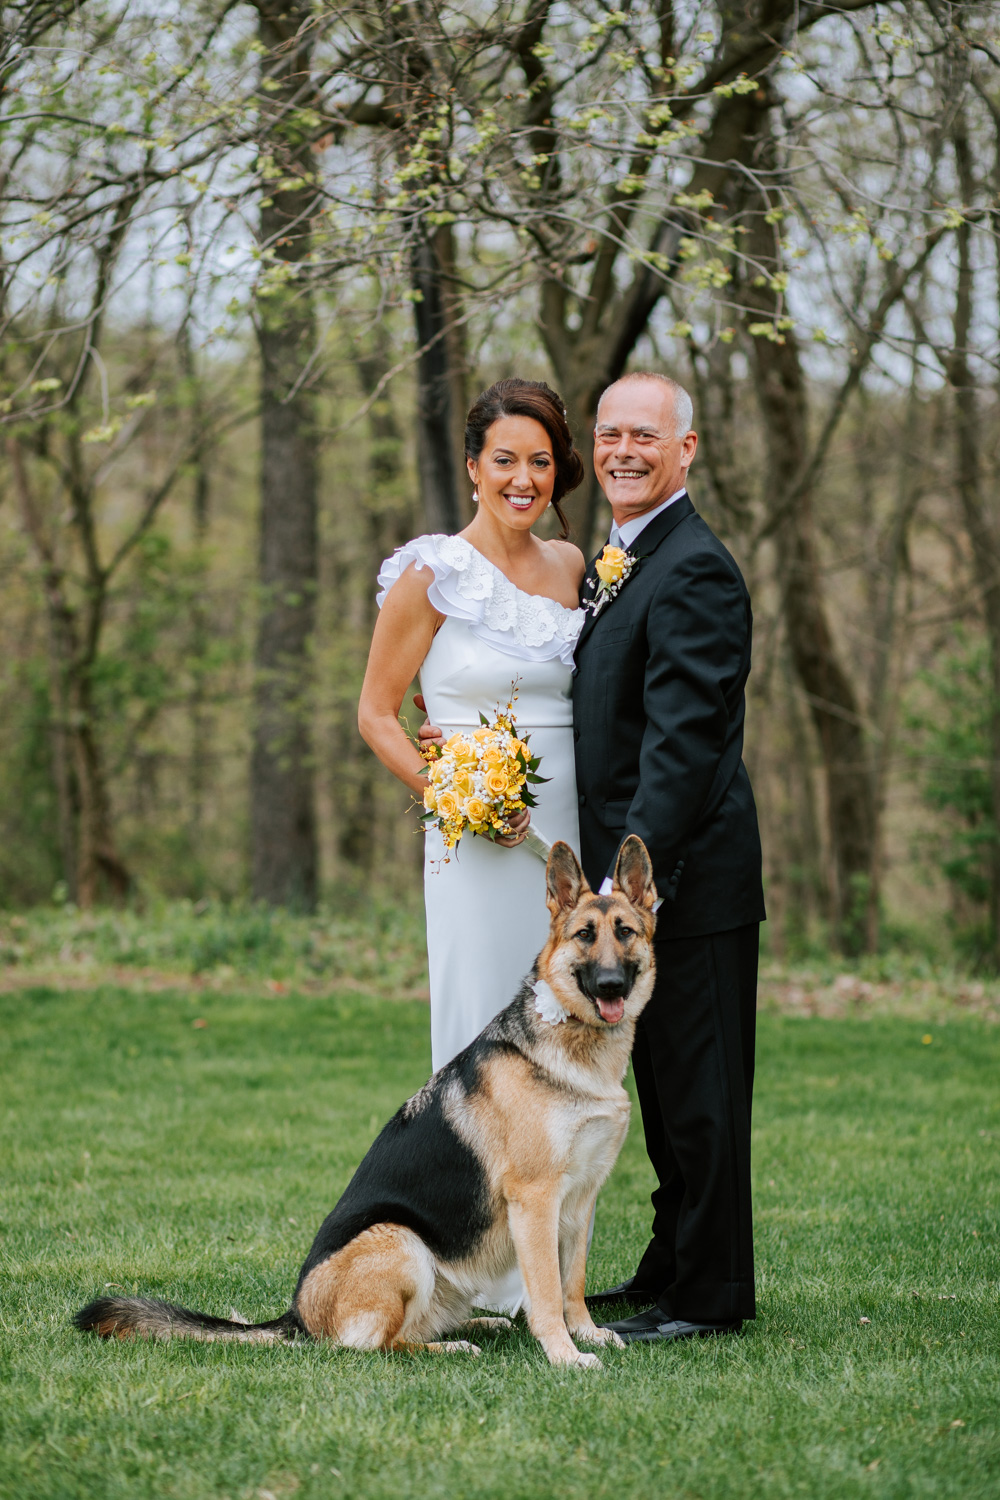 Shutter Up Studios   Wedding photographer in Pittsburgh, Pennsylvania   Bride and groom with German shepherd dog and yellow roses